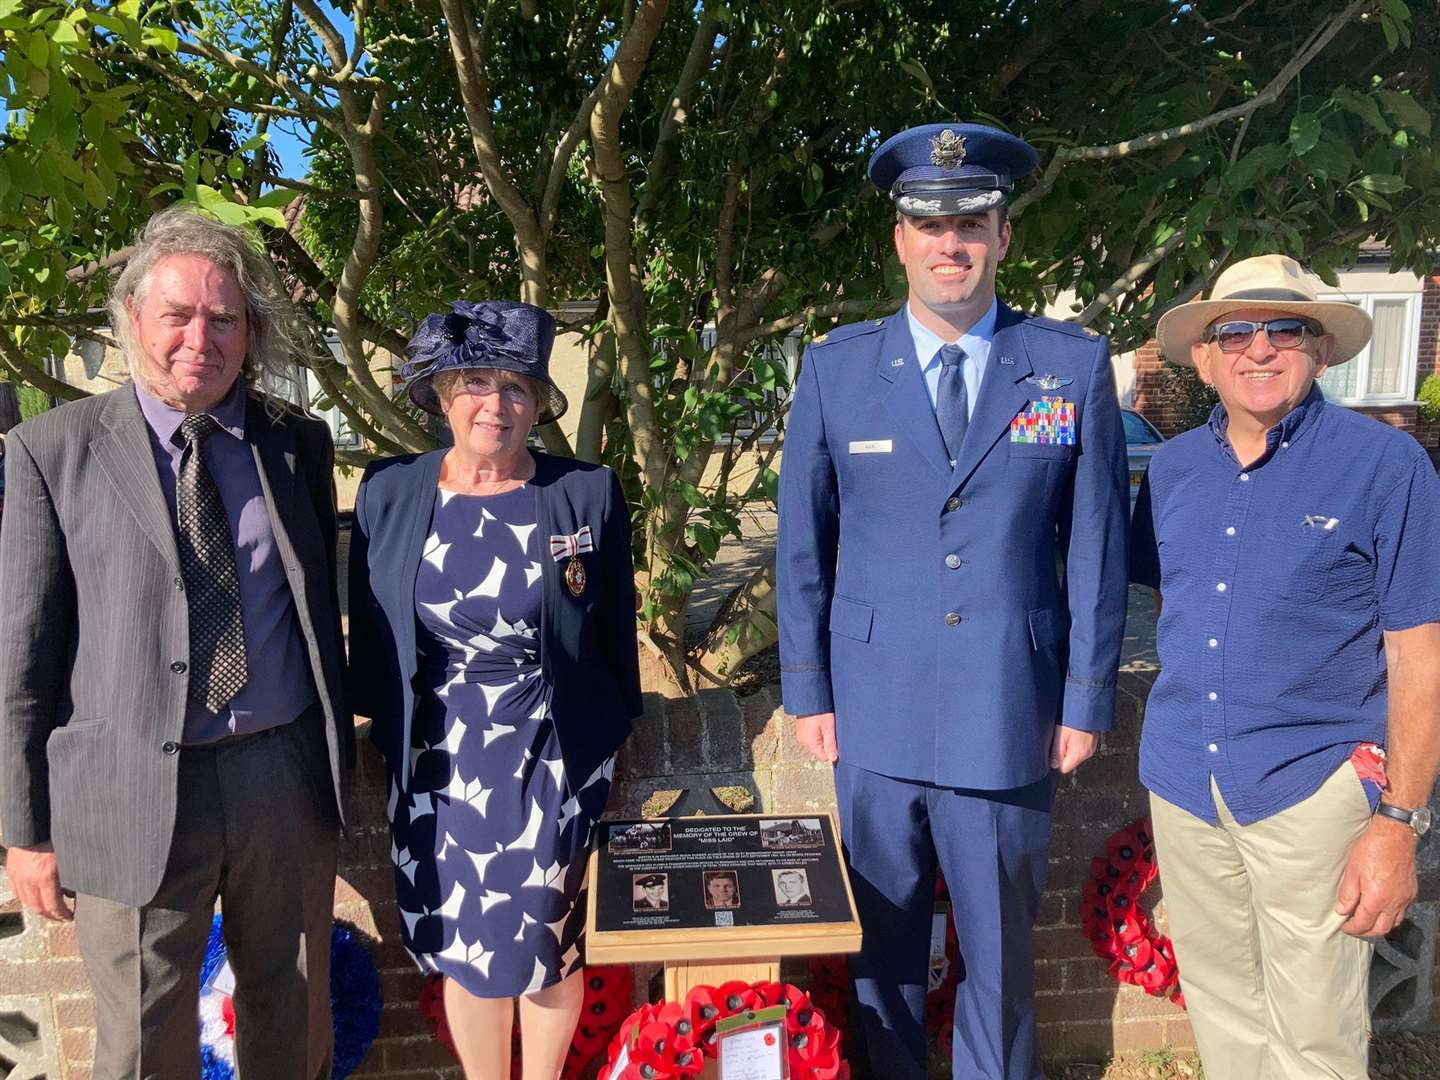 Memorial organisers Mark Ratcliff, left, and Steve Foster, right, with Major David Nan, of the USAF, and Essex Deputy Lord Lieutenant Rosemary Padfield